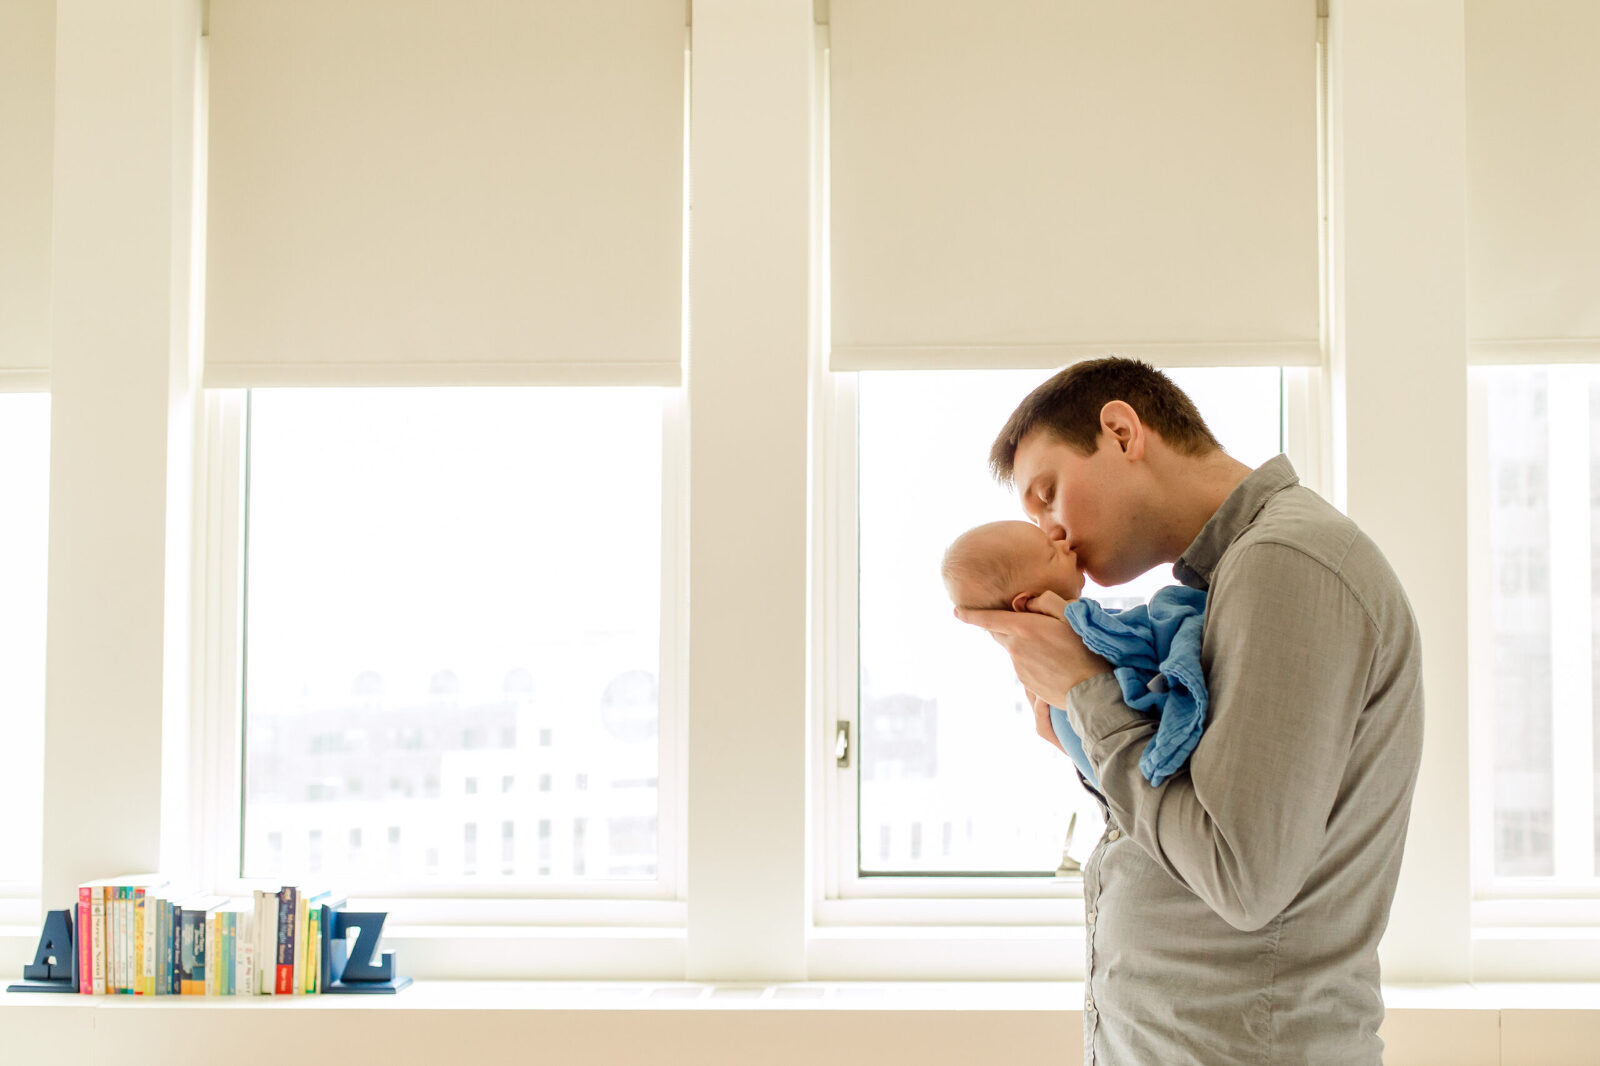 dad kisses his new baby in front of sunlit windows